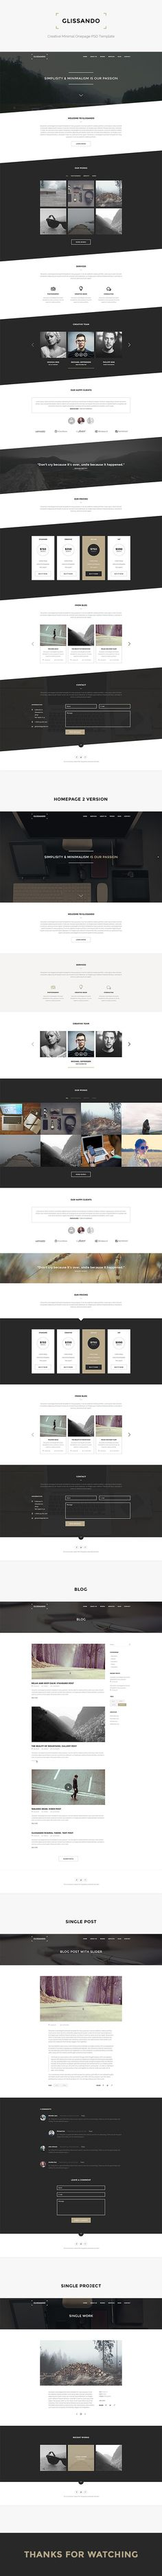 Glissando – Creative Minimal Onepage PSD Template on Behance